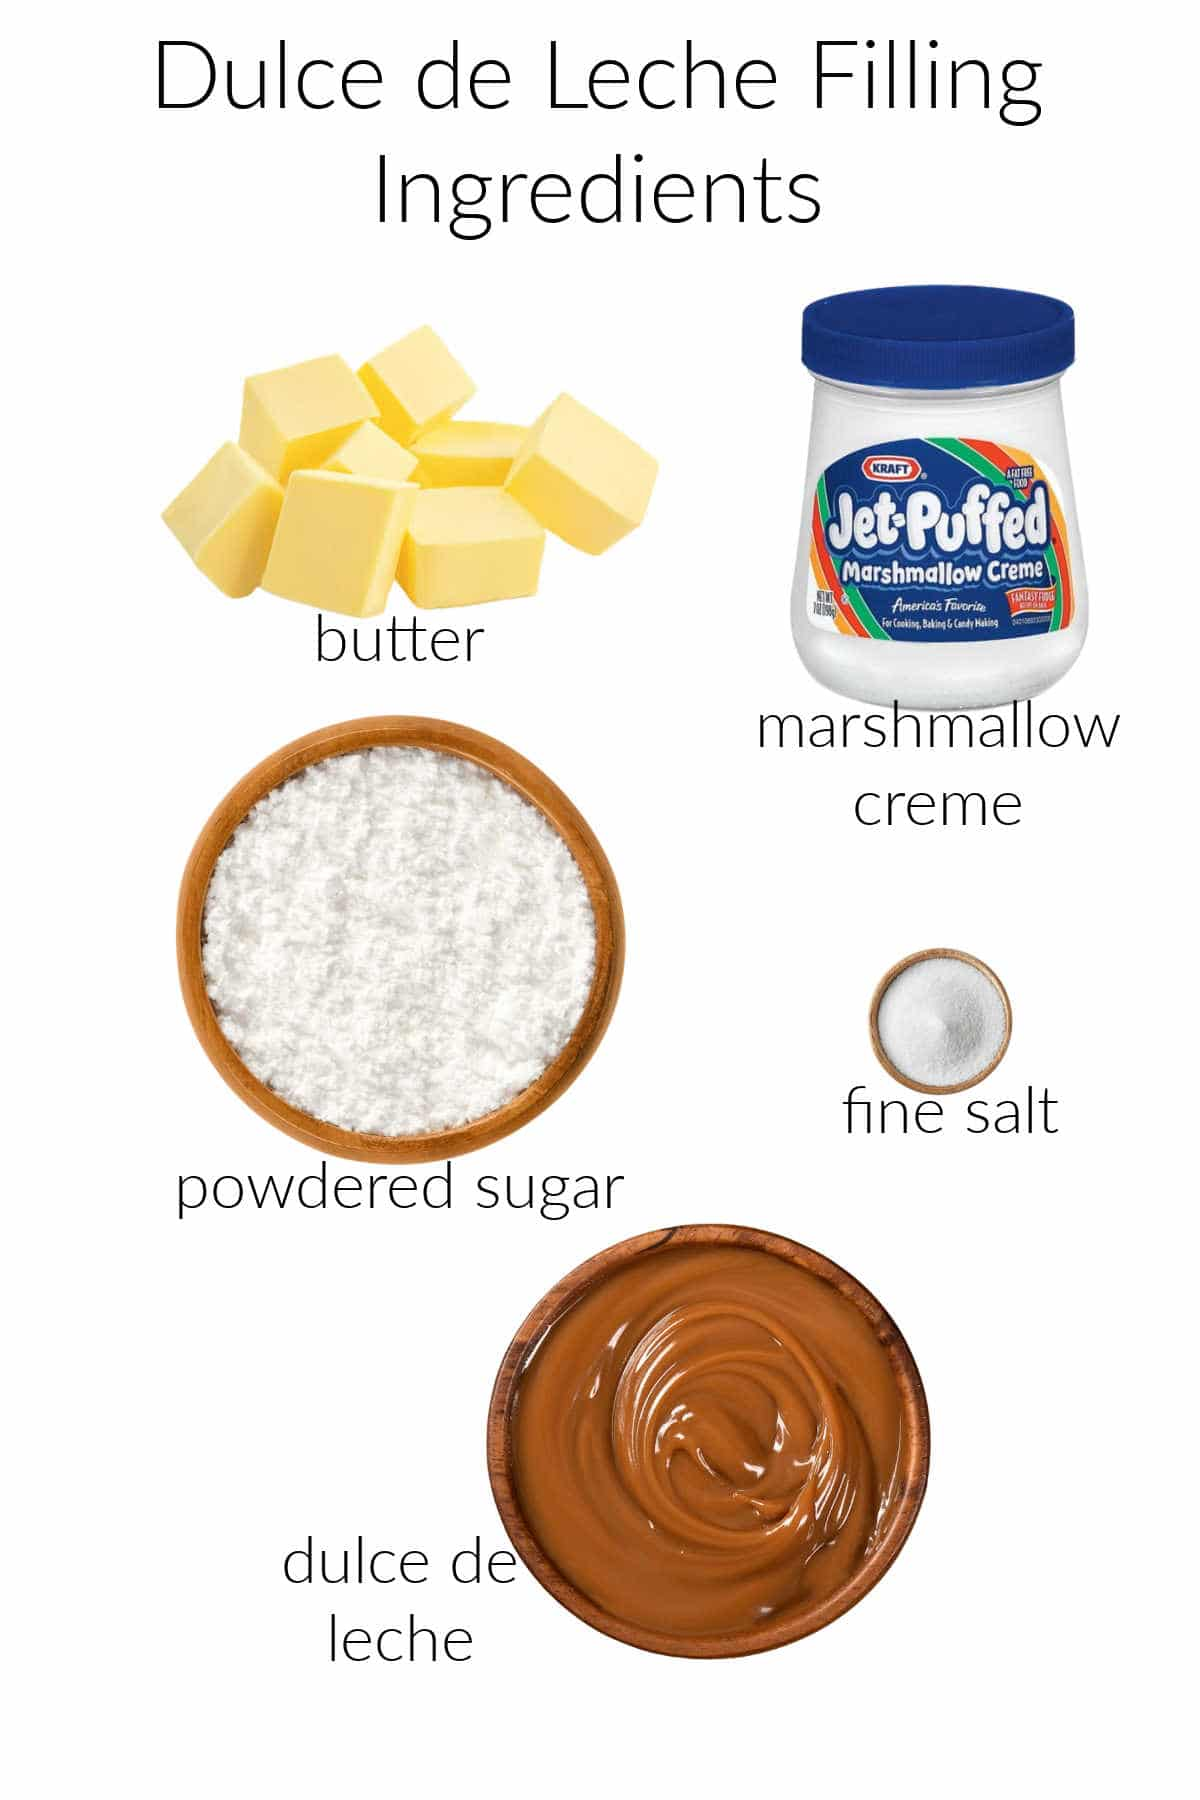 Collage of ingredients for making dulce de leche filling for sandwich cookies.